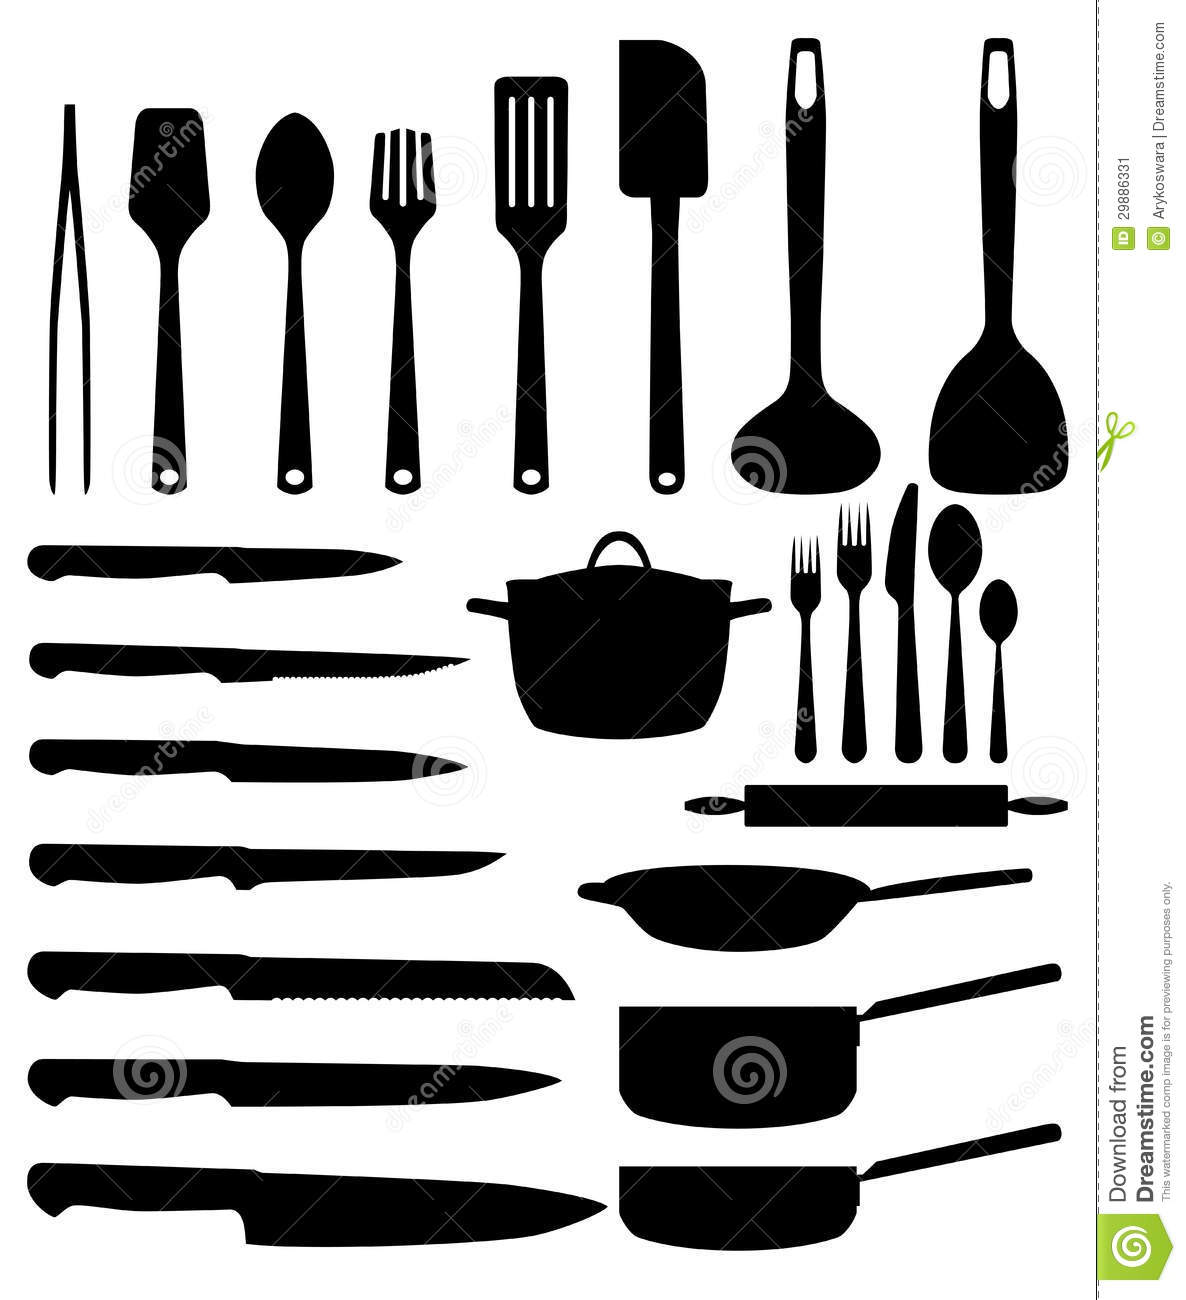 Ustensile de cuisine illustration stock illustration du for Ustensile de cuisine maryse